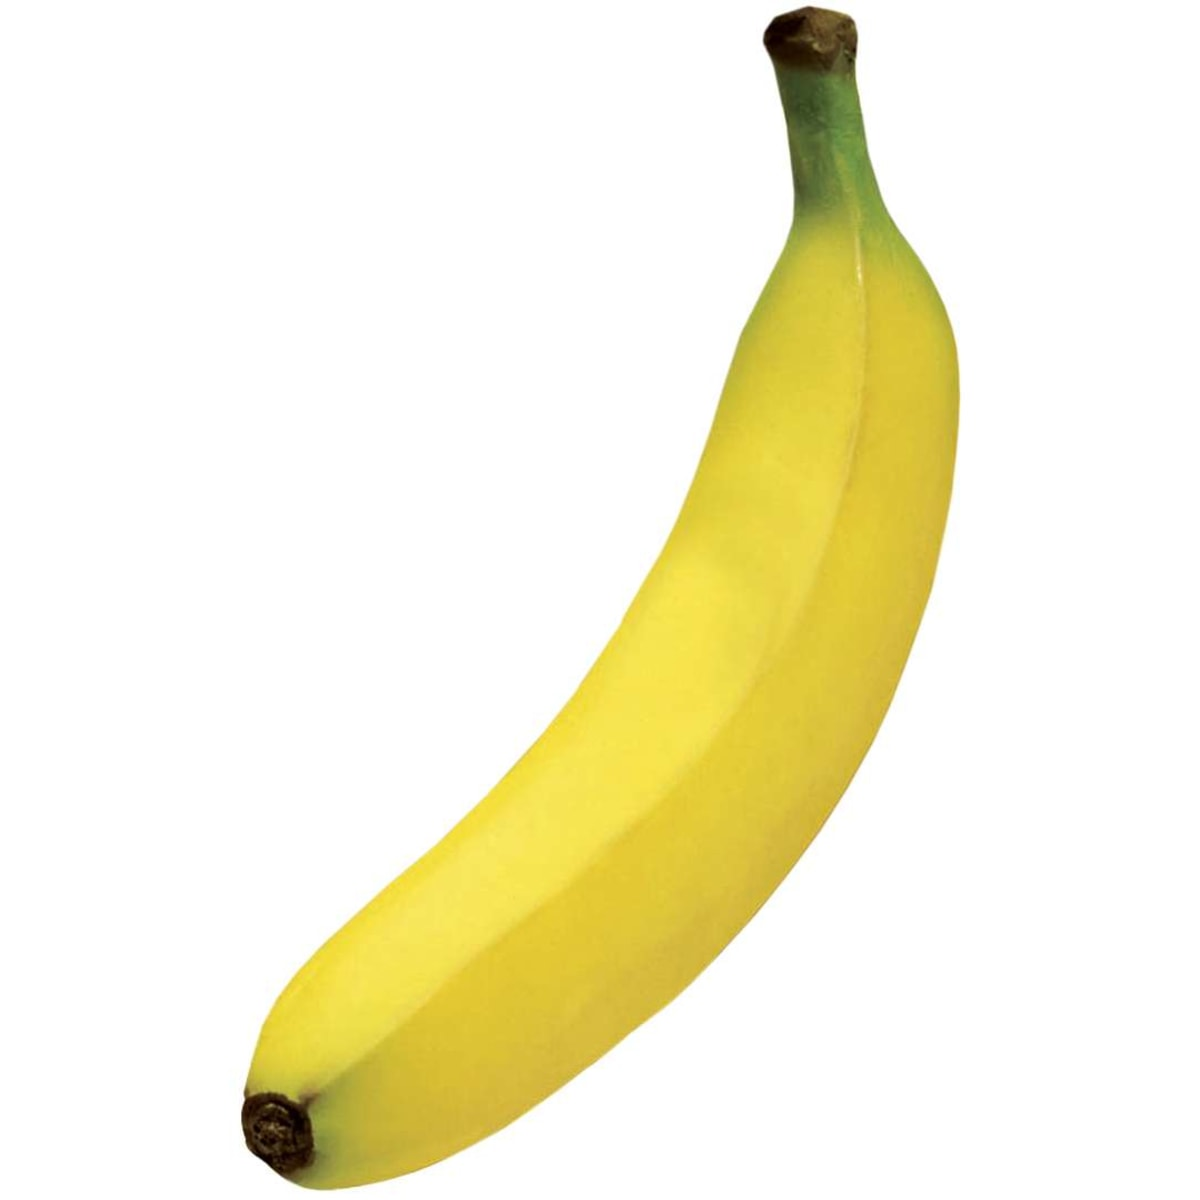 Bio Bananen FairTrade ca. 1 Stk